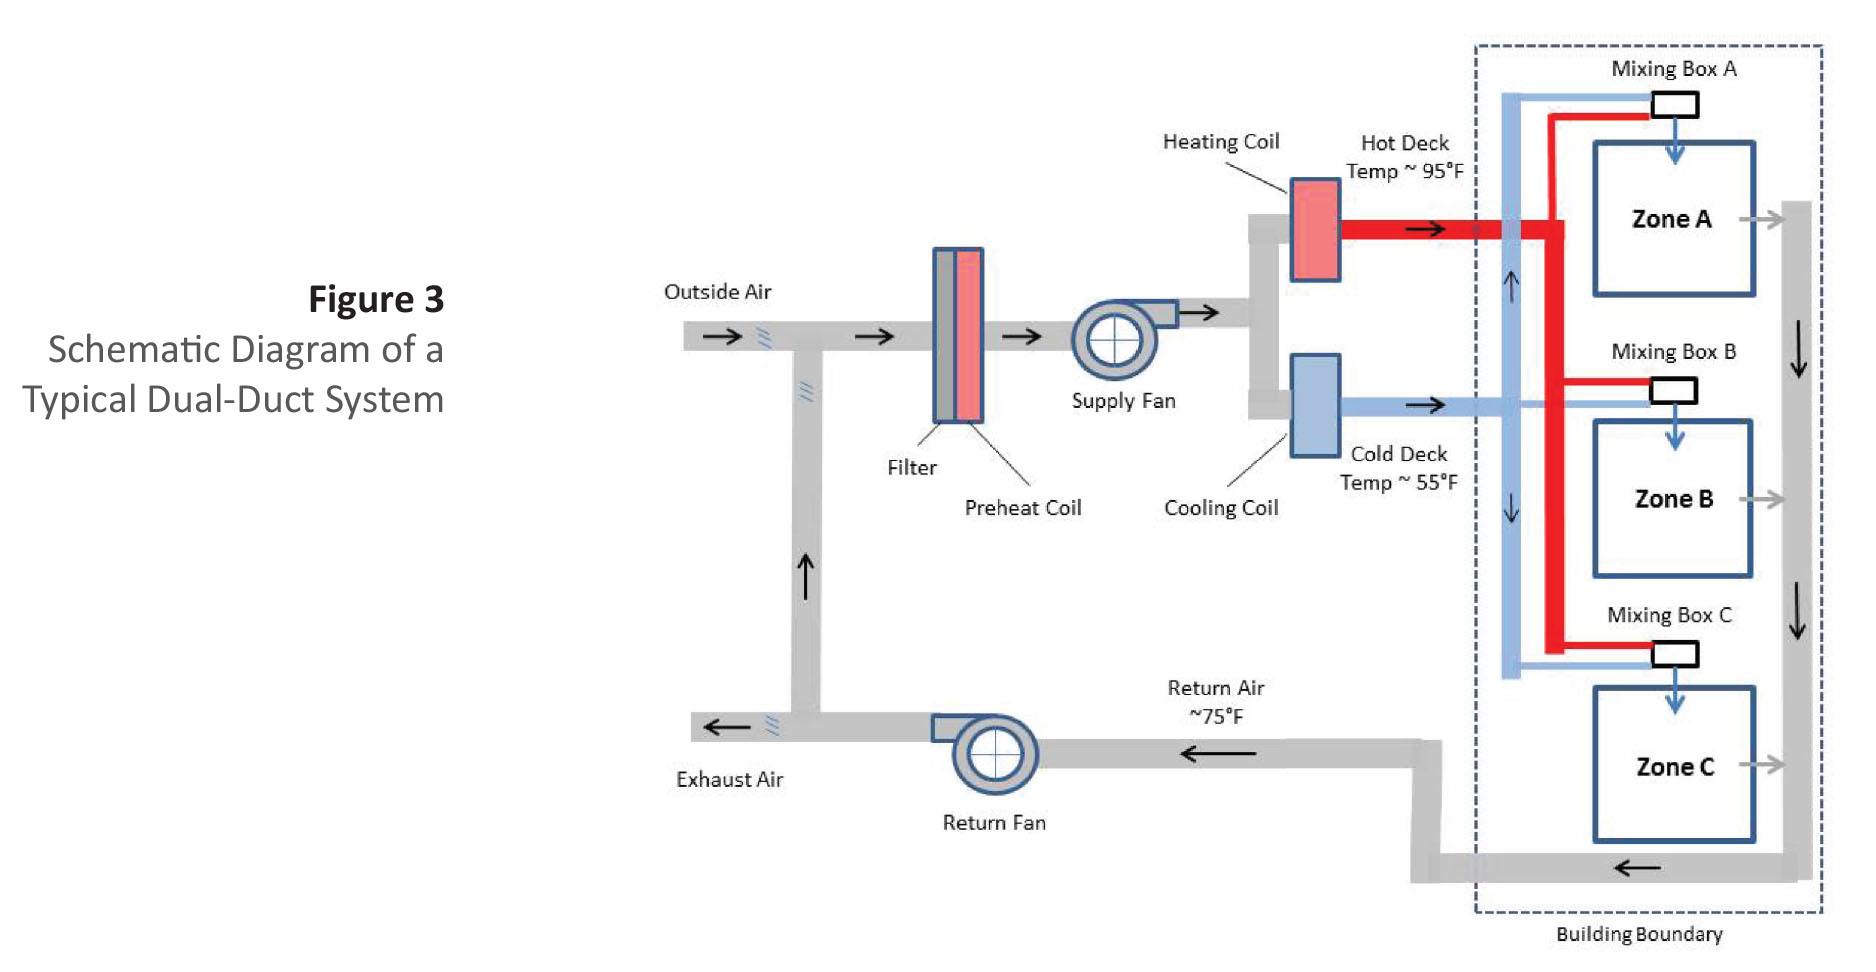 Piping Schematic Auto Electrical Wiring Diagram Mockingbird Understanding Insulation Systems Commercial Hvac Duct